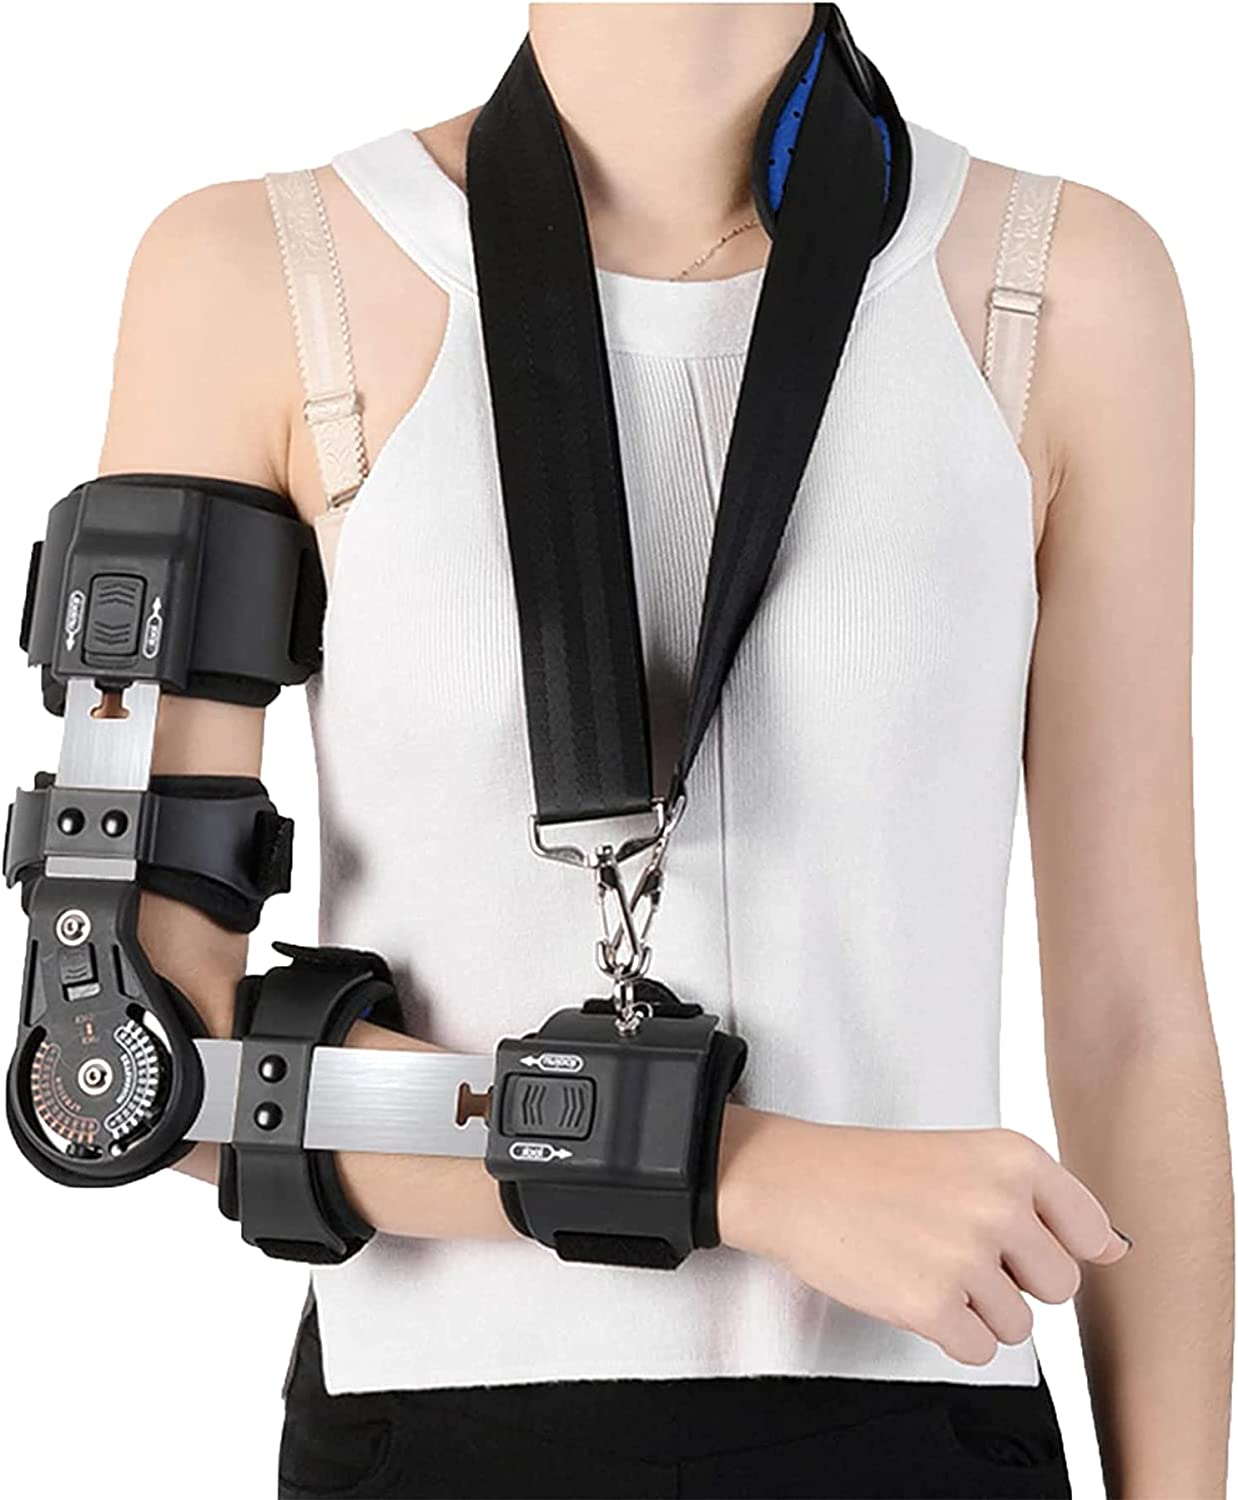 WILLQ Hinged ROM Elbow Latest item Brace Recovery Ligamen Surgery Sling with NEW